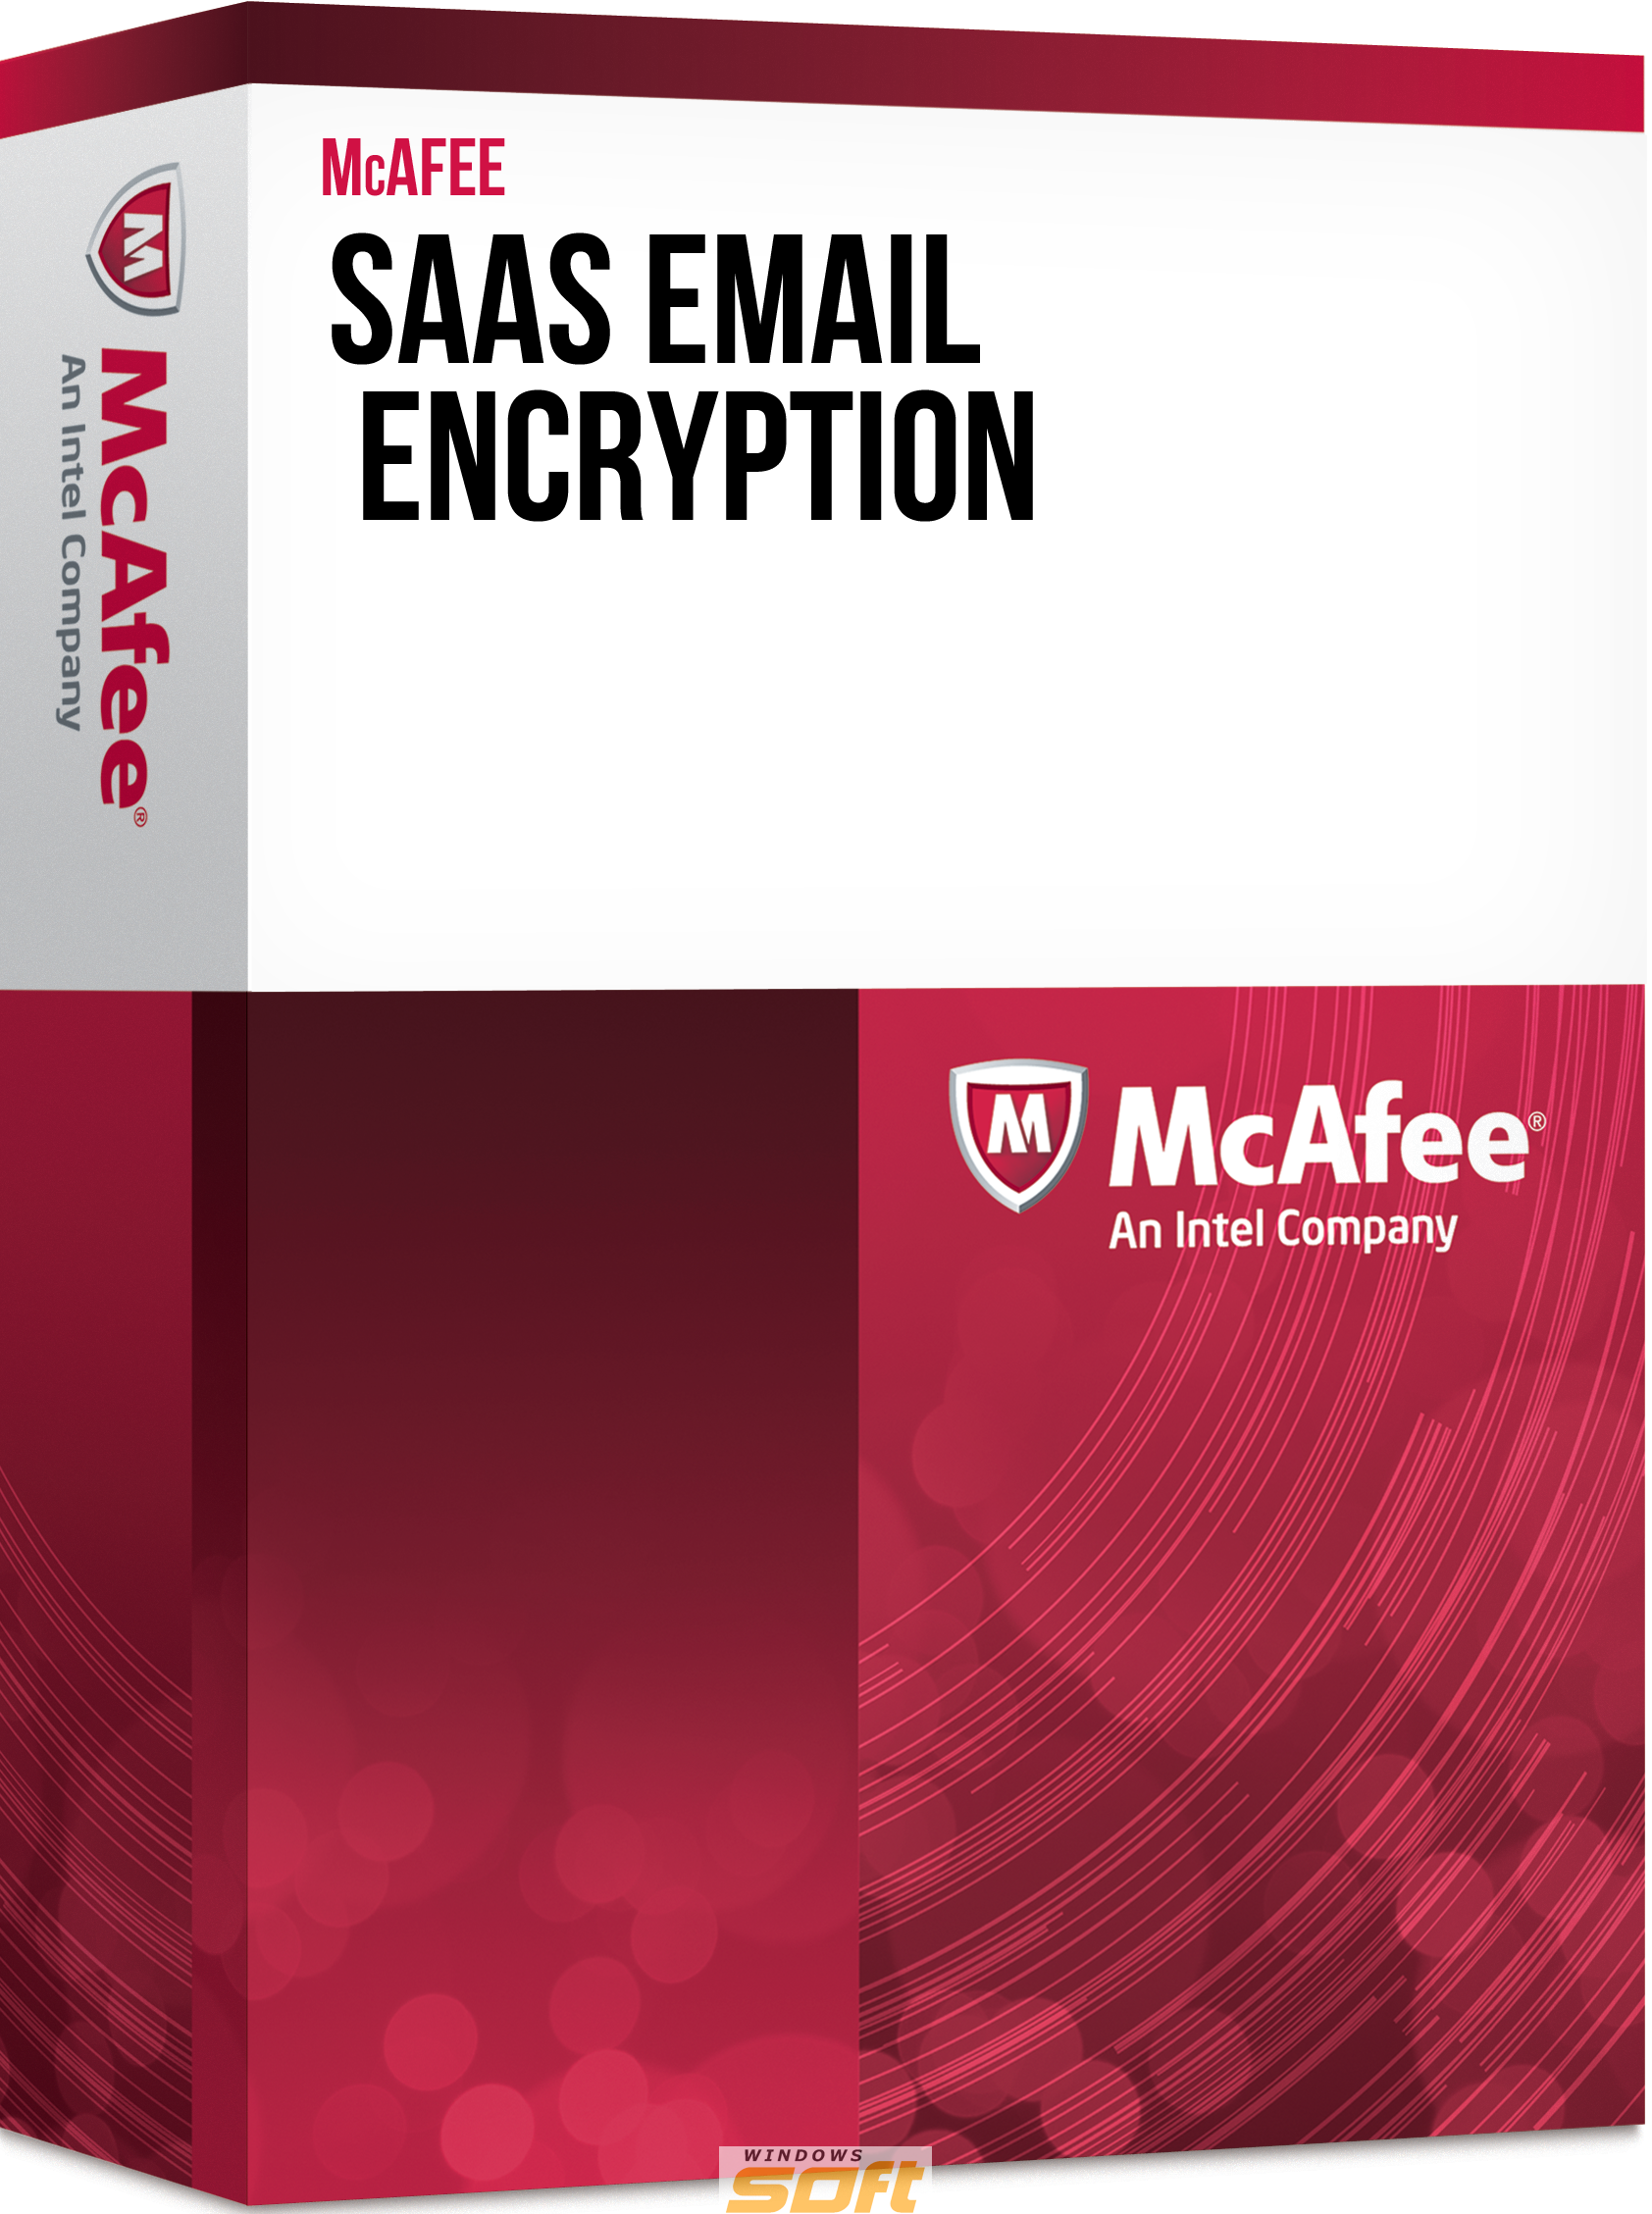 ������ McAfee SaaS Email Encryption Module SEEECE-AA-*A �� ��������� ����